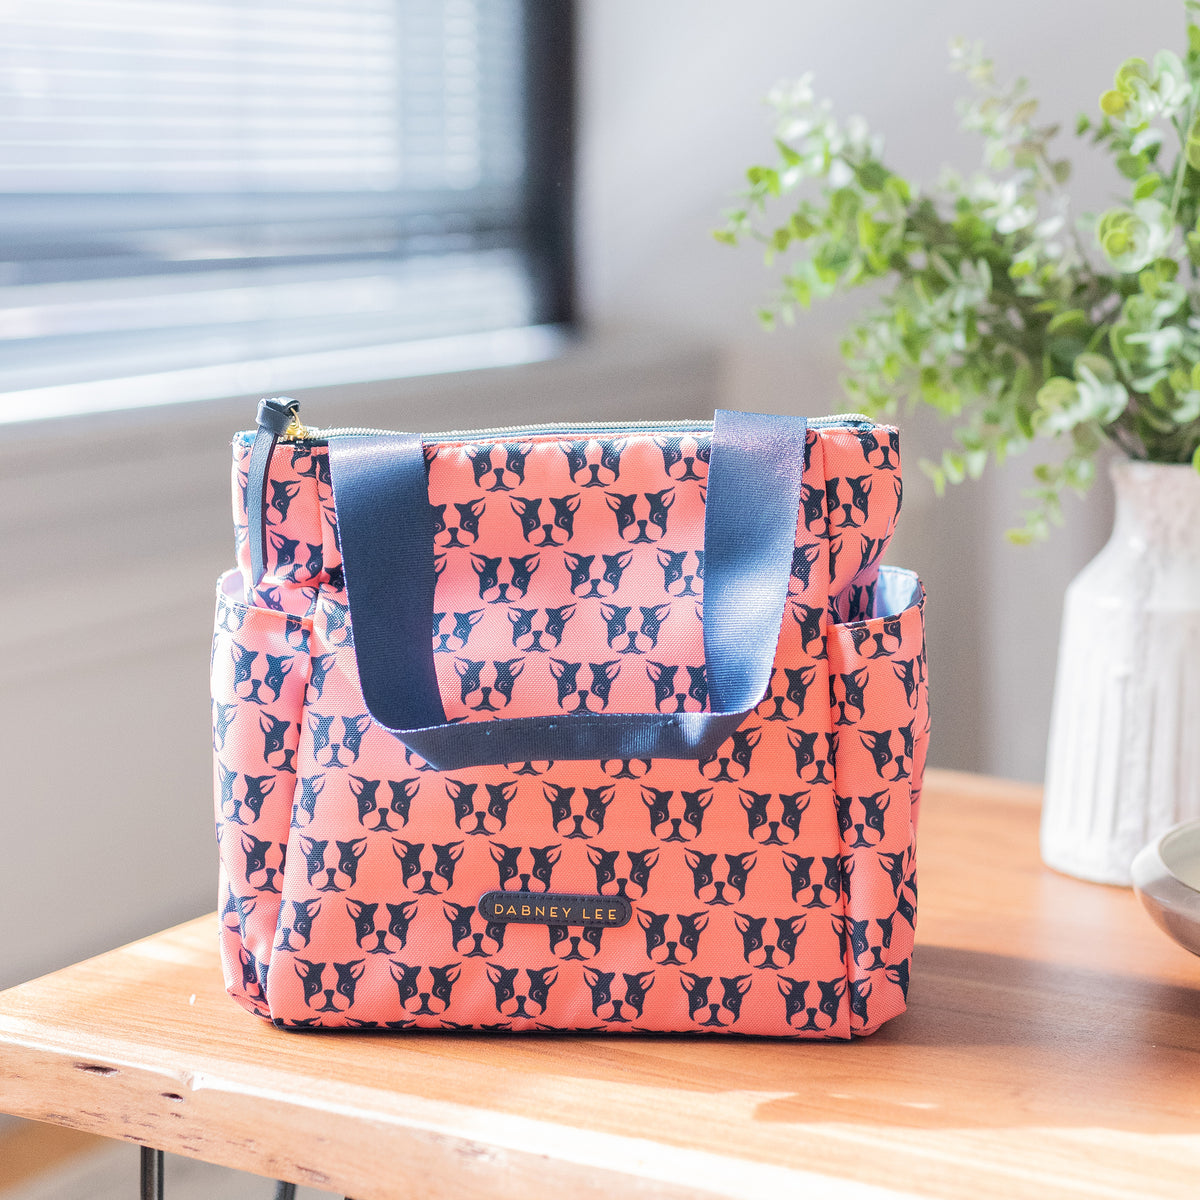 Arctic Zone® Dabney Lee Karina Tote - Polly Coral - Lifestyle, lunch tote on counter